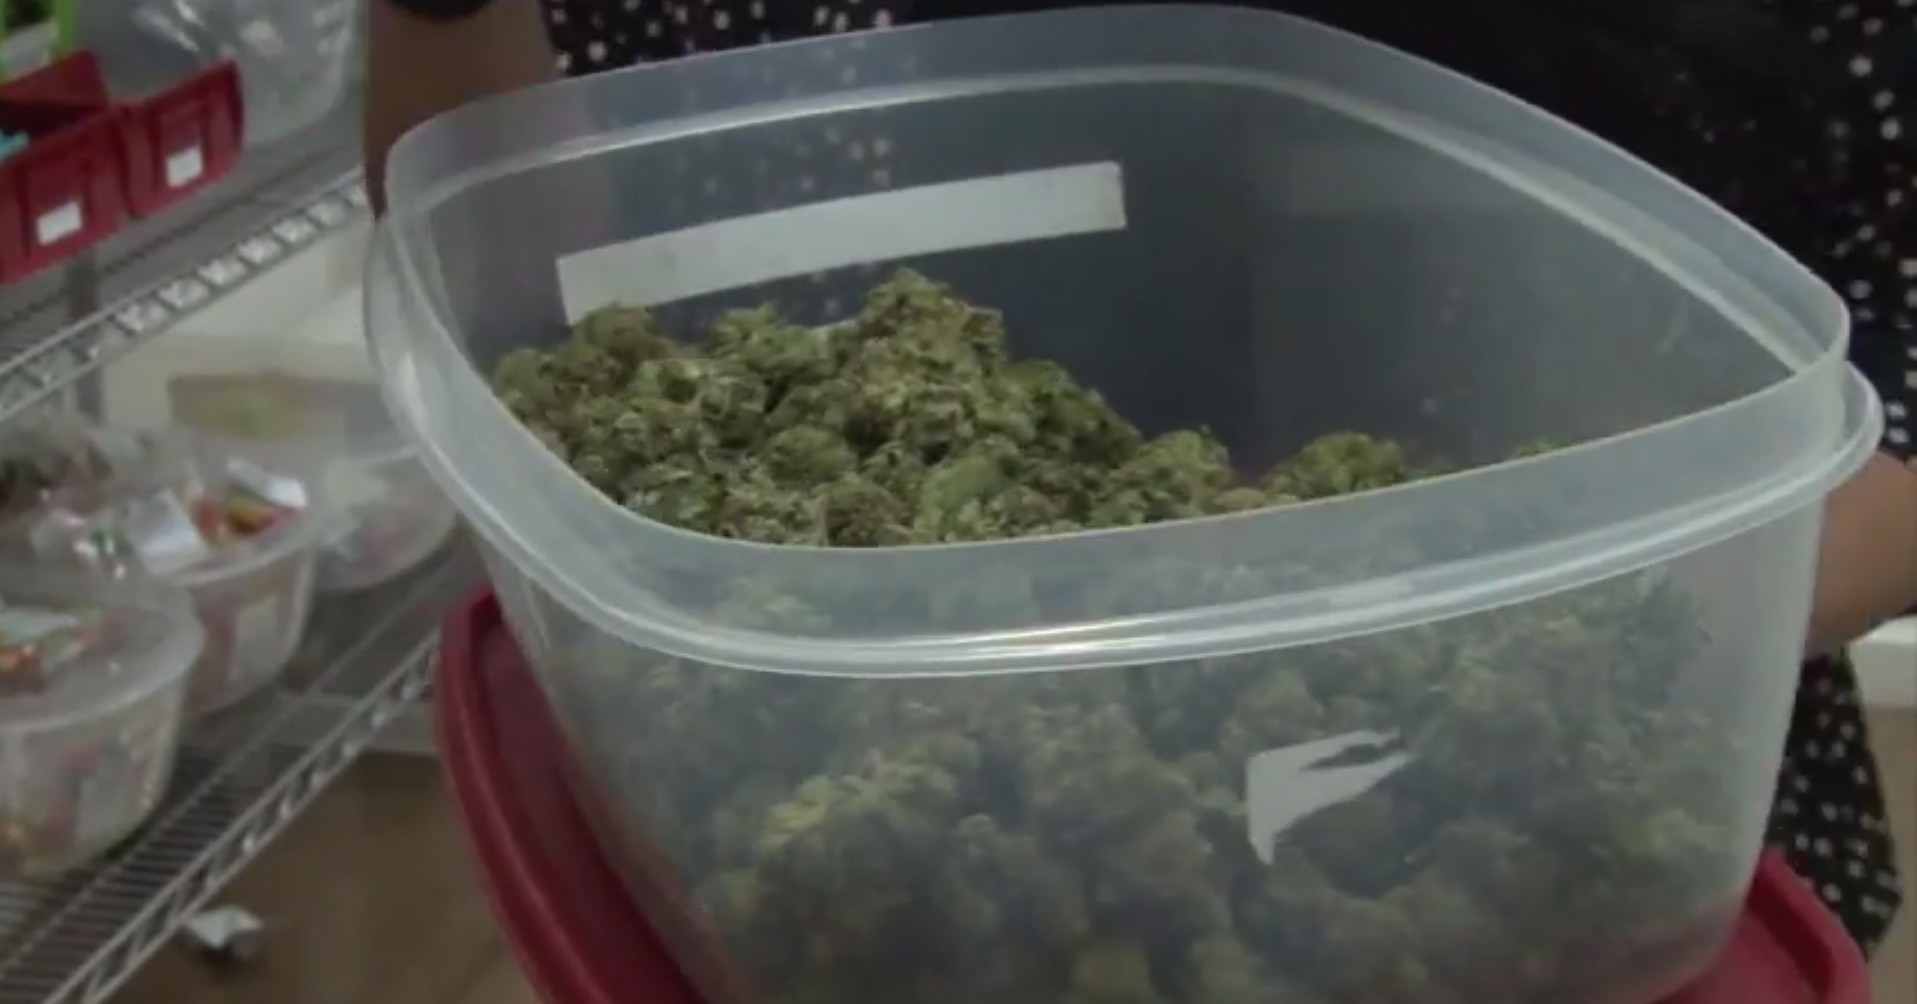 The Marijuana Policy Project submitted petitions for a statewide ballot initiative that would regulate marijuana like alcohol. Activists have been working toward this initiative for months and say it would improve Arizona's future.